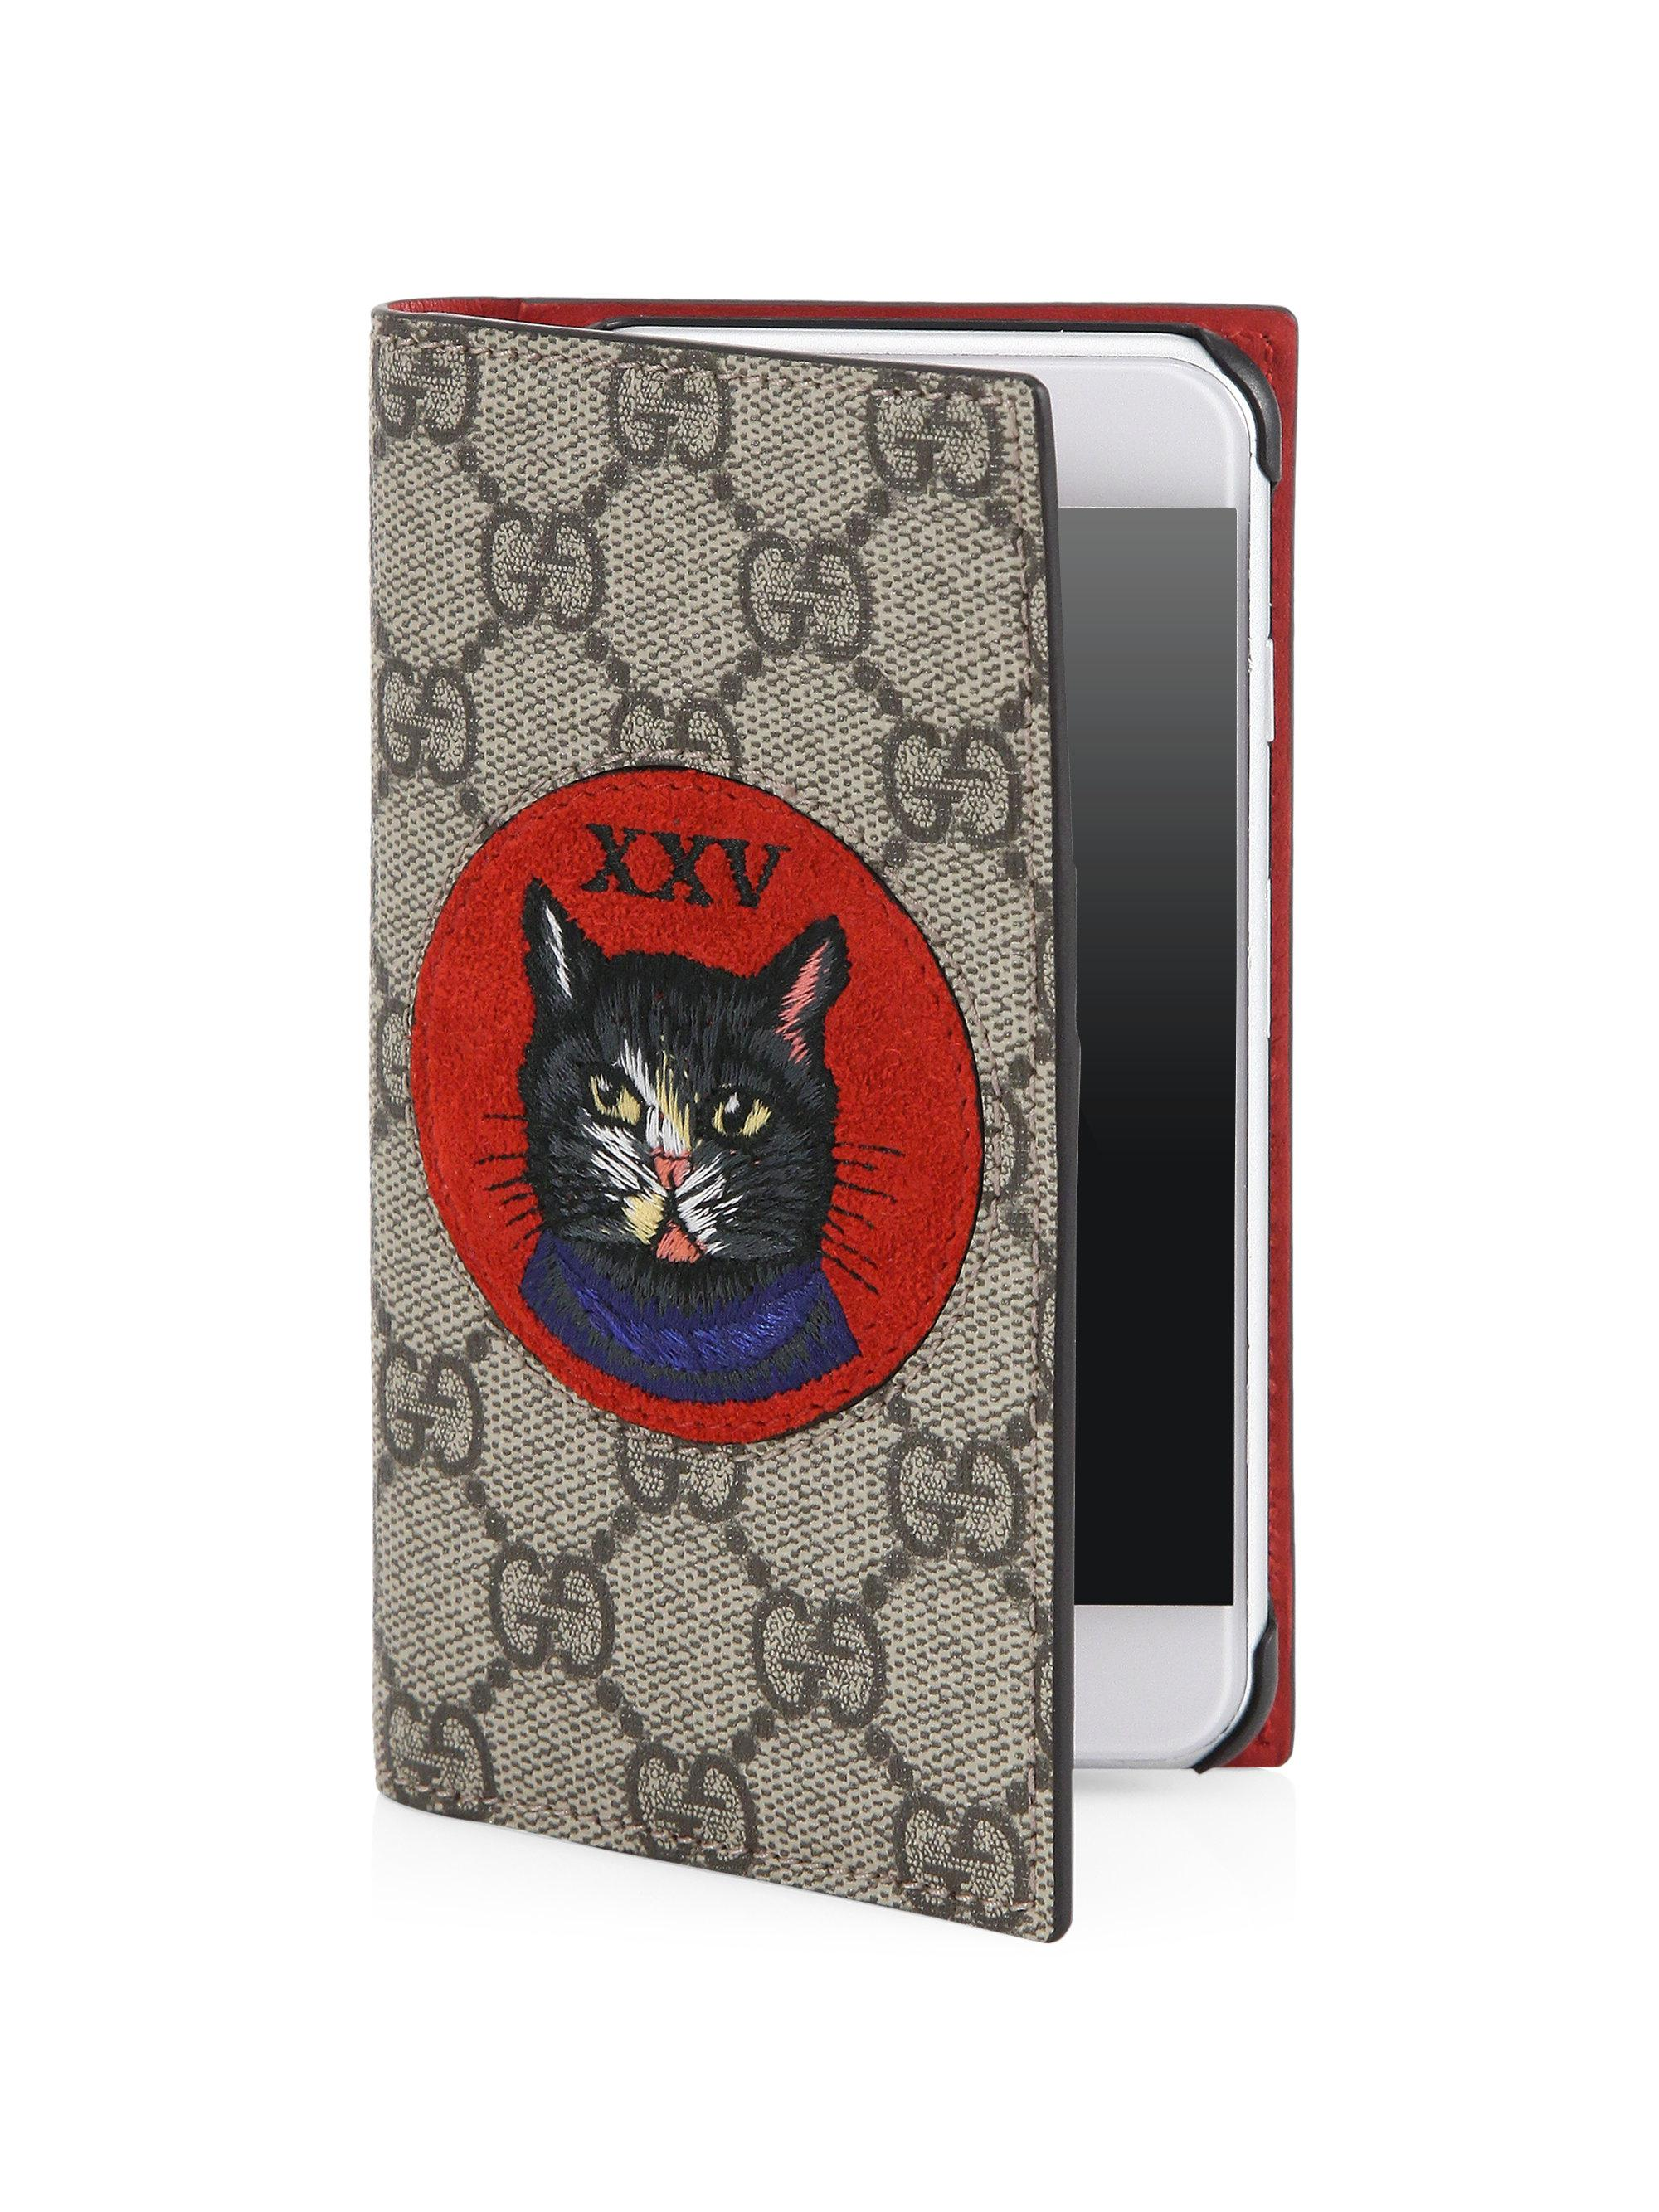 3e6acd8d1f9 Gucci Embroidered Mystic Cat And Xxv Suede Patch Iphone 7 Cover - Lyst